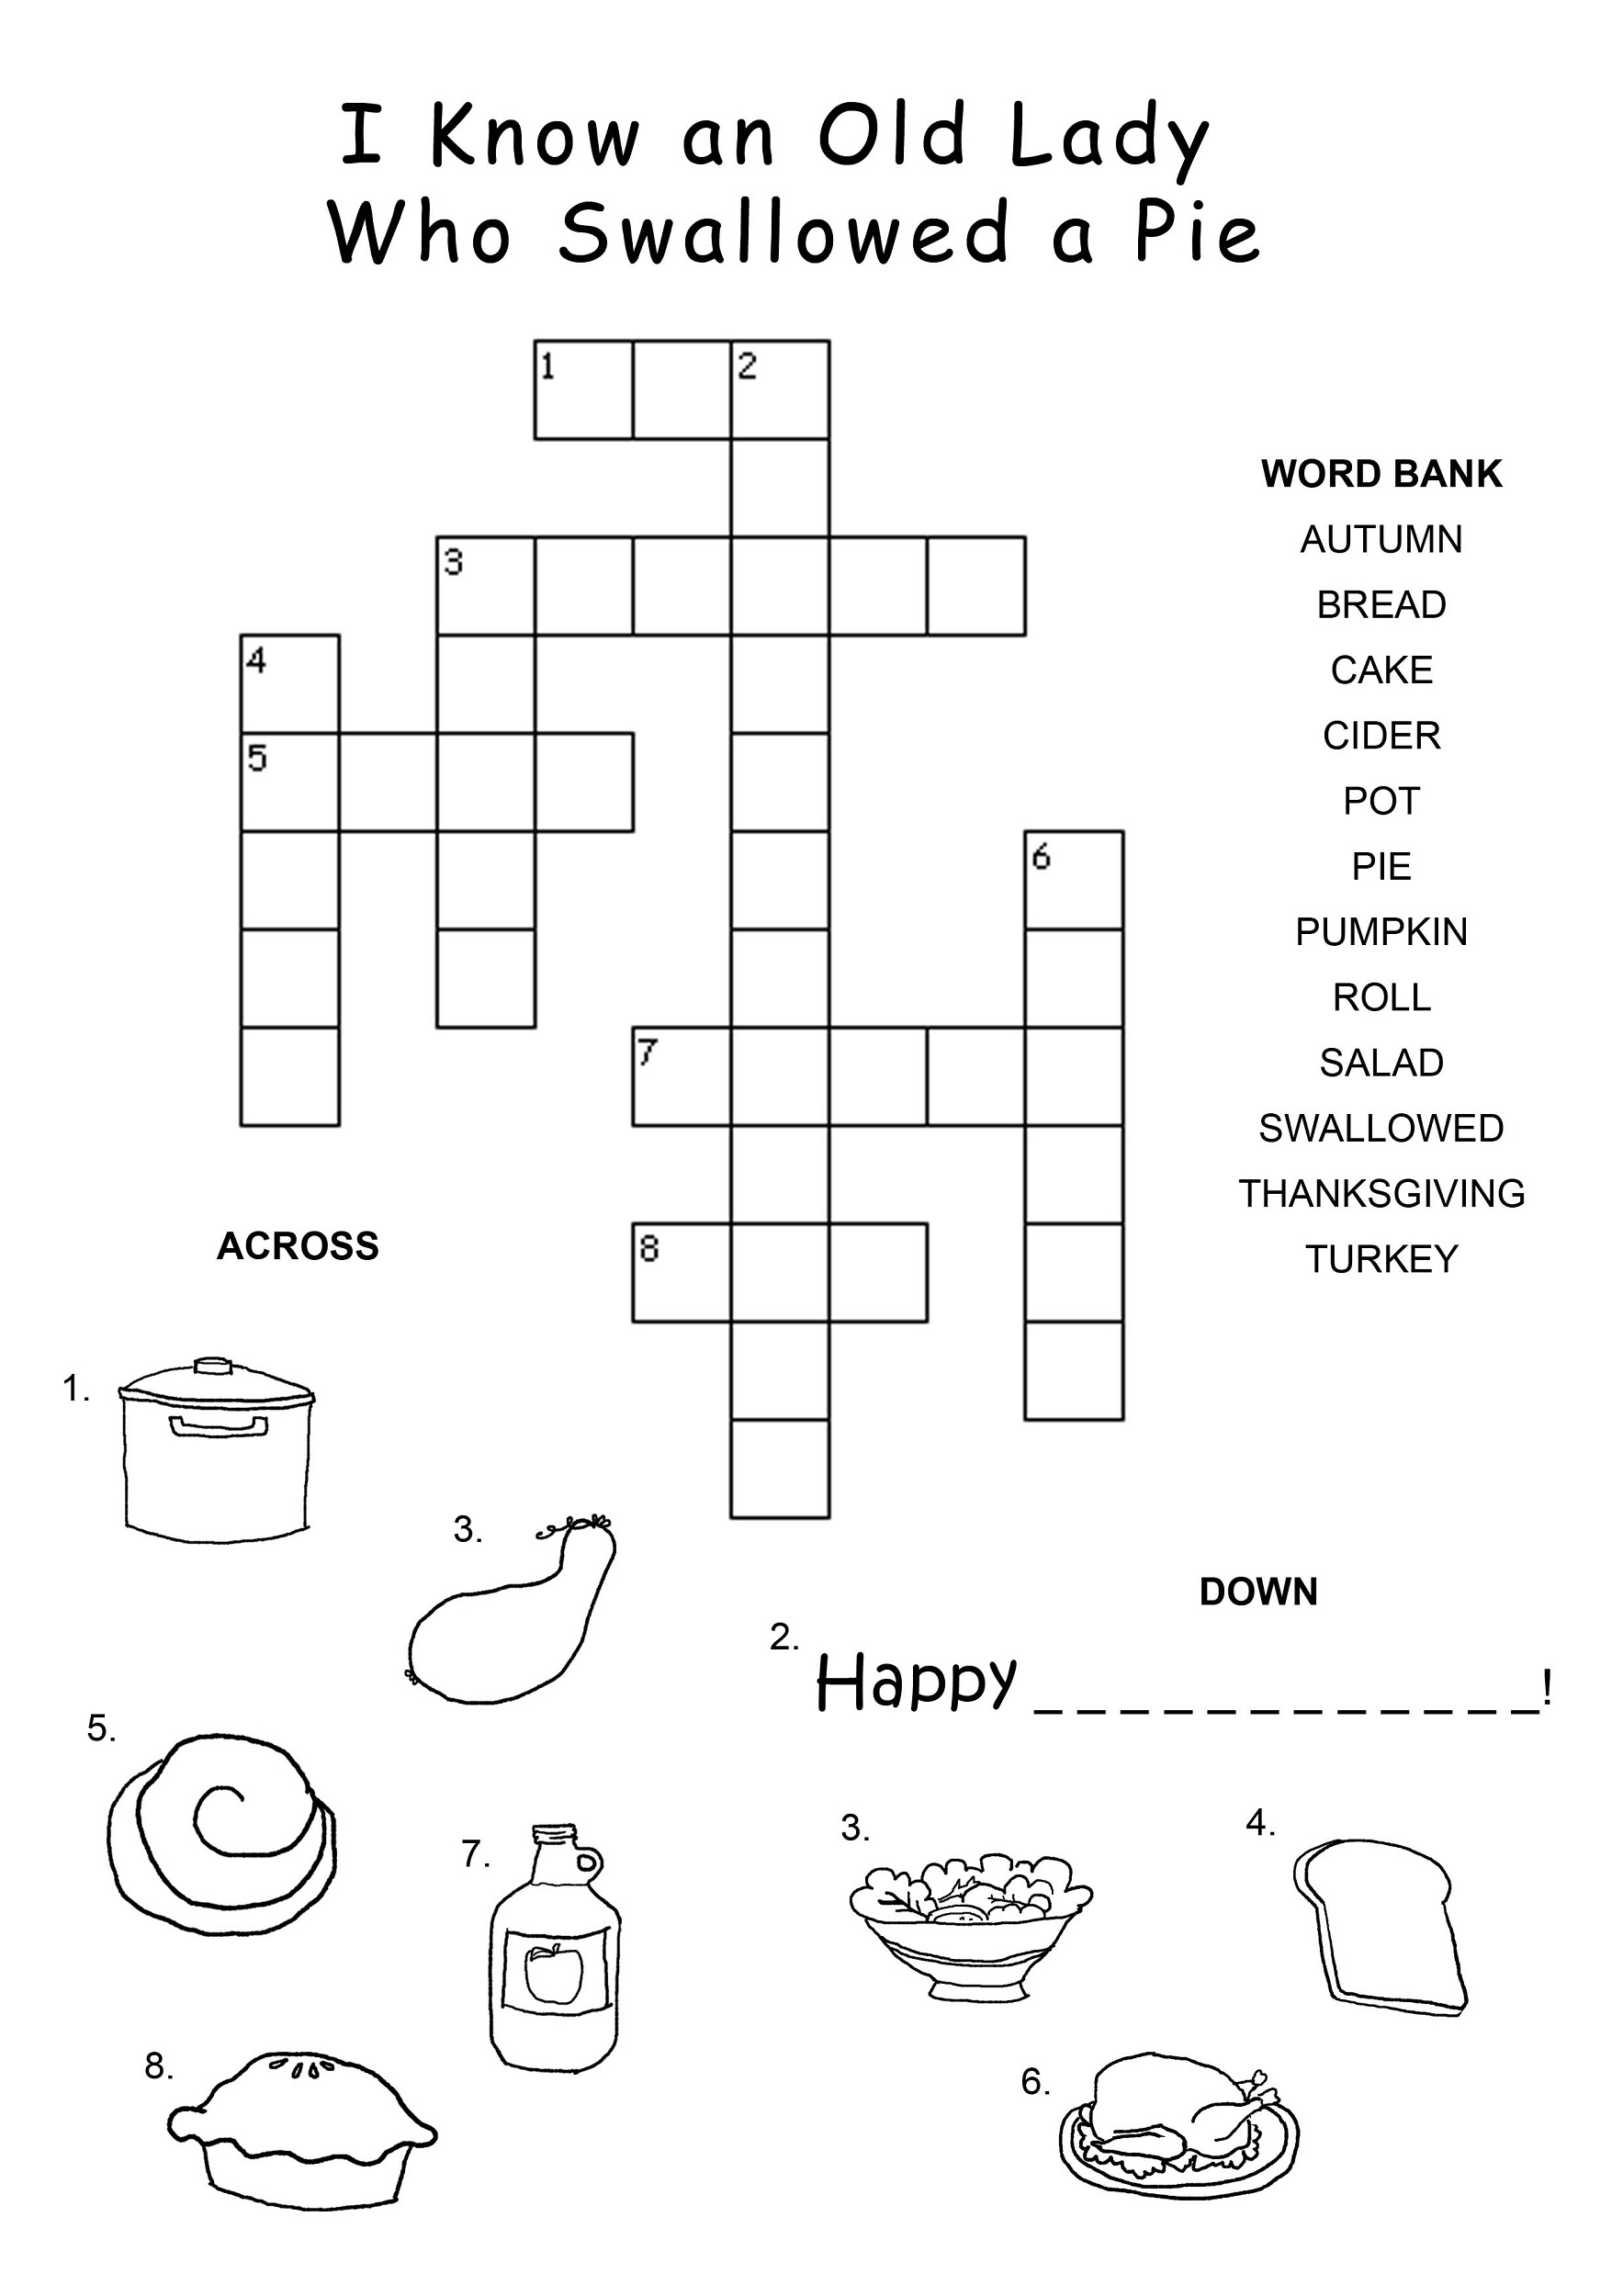 Ridiculous image intended for printable easy crossword puzzles